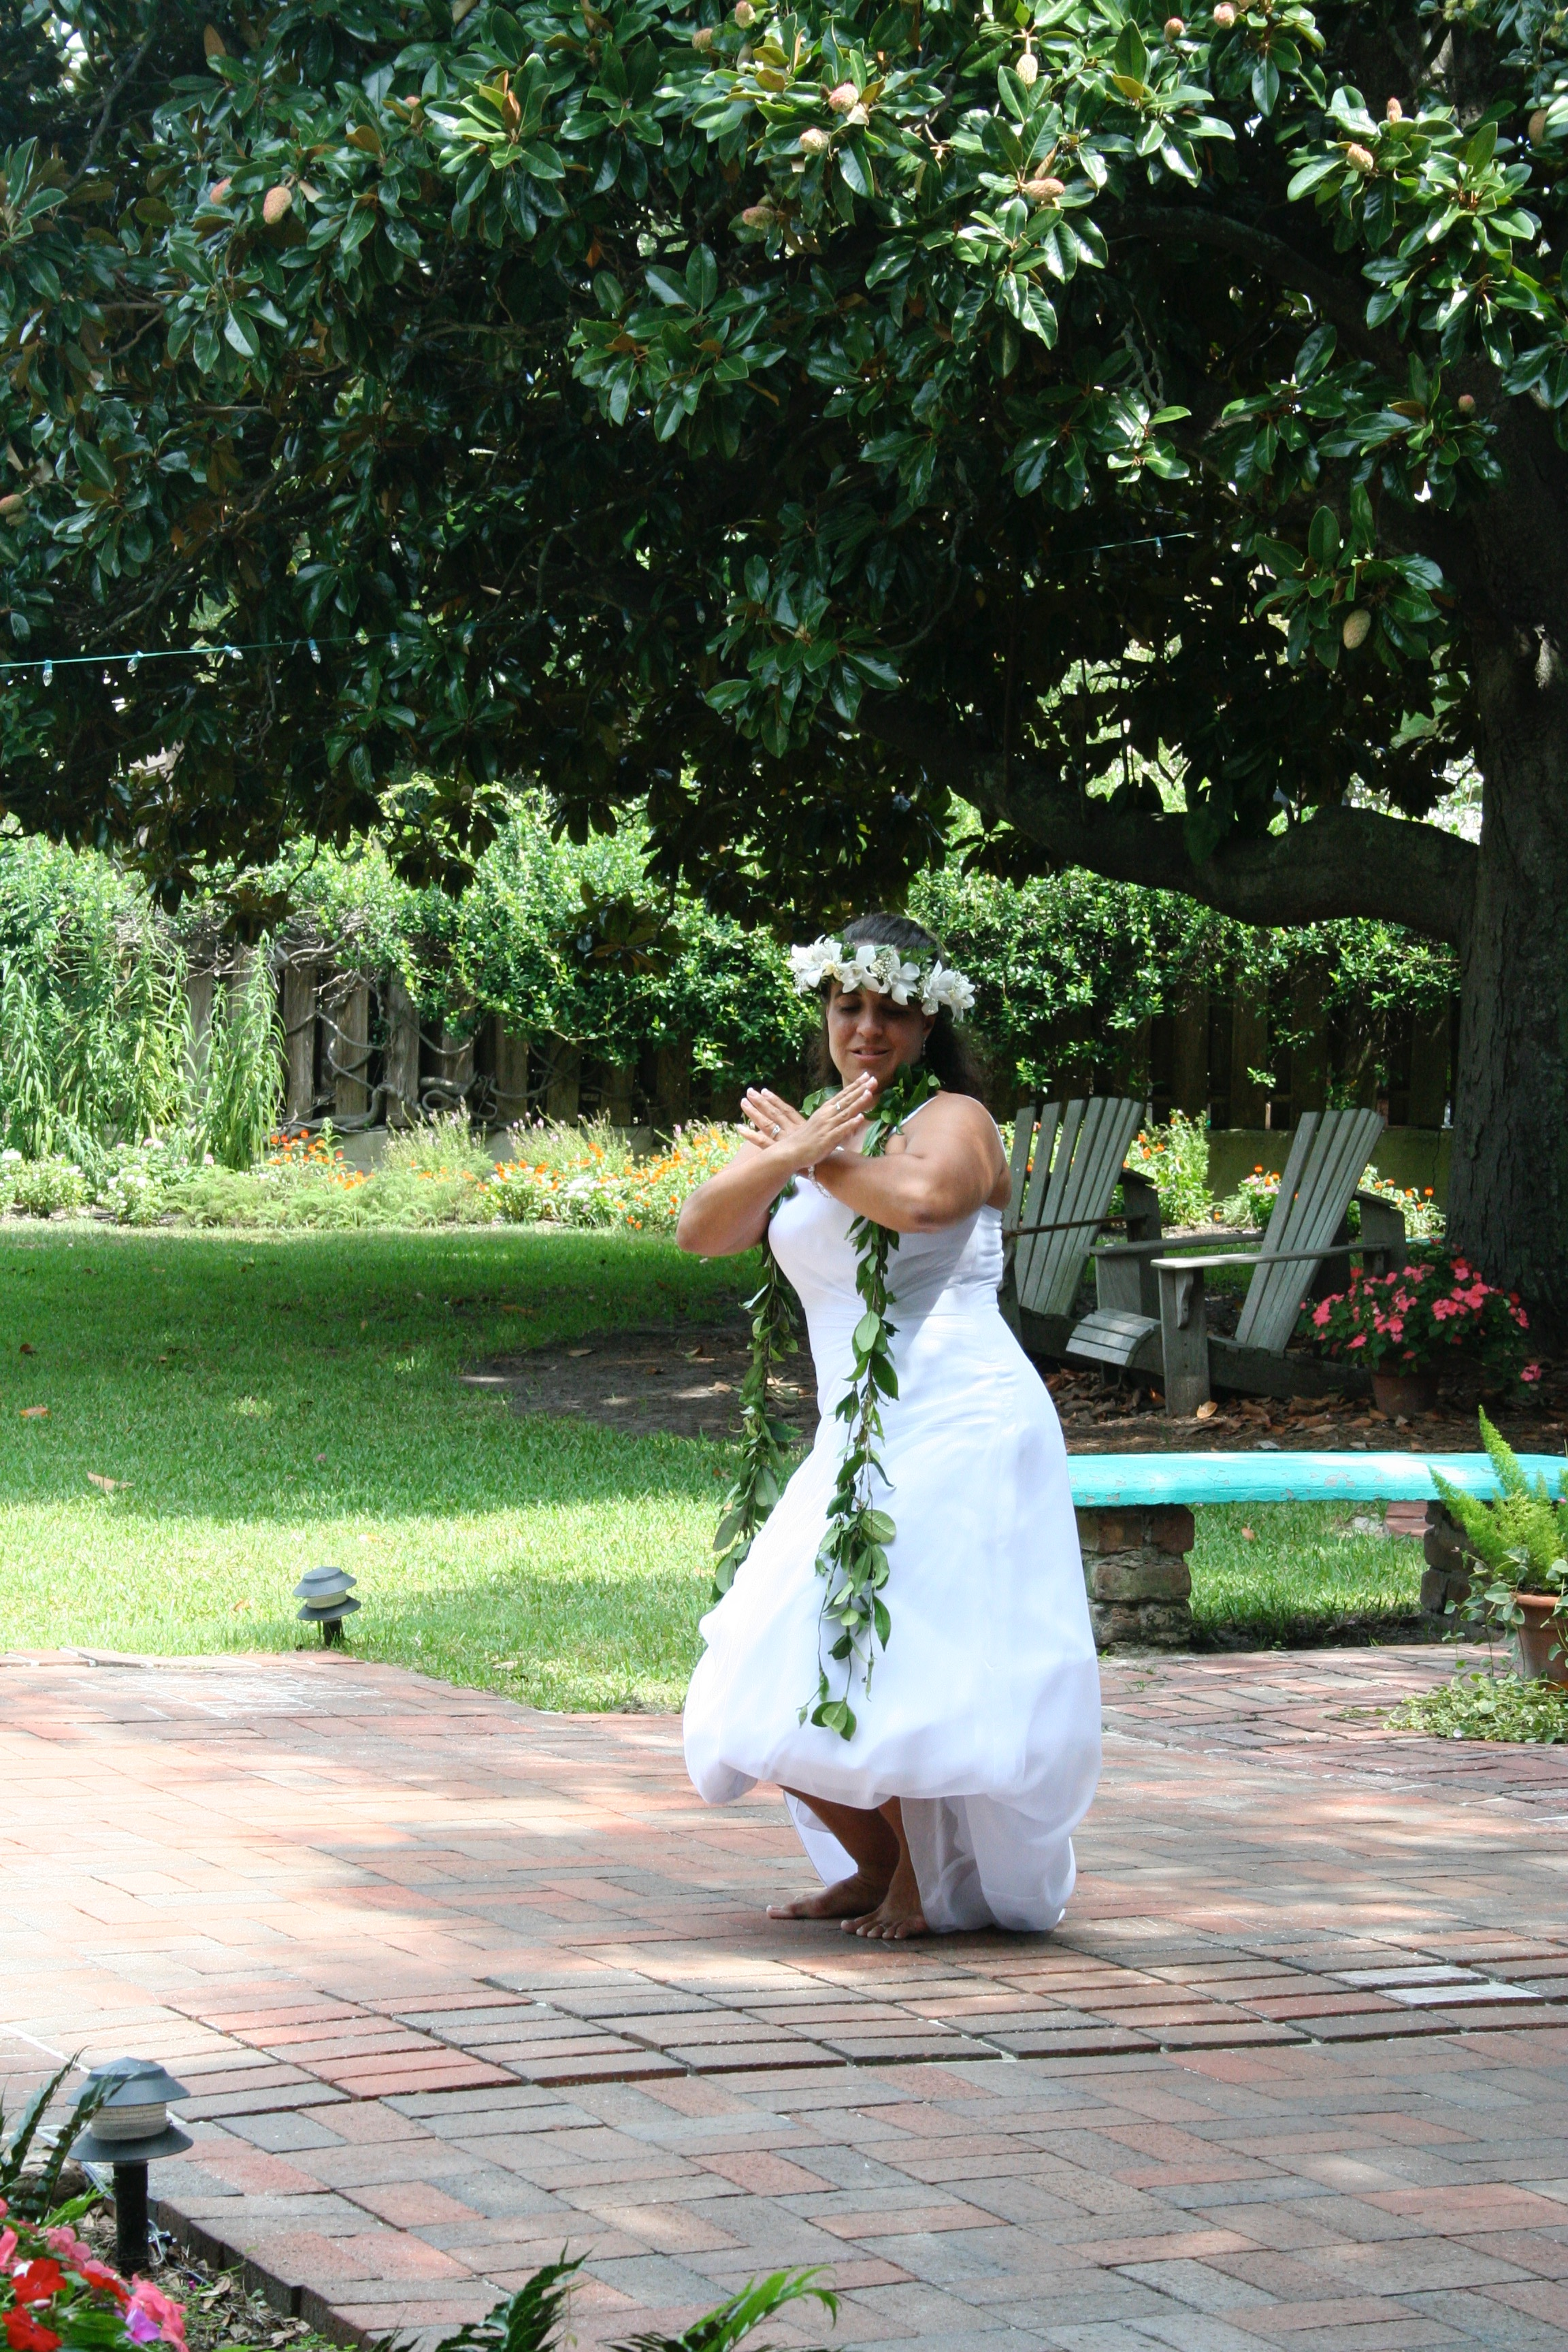 Traditional Hawaiian wedding dance